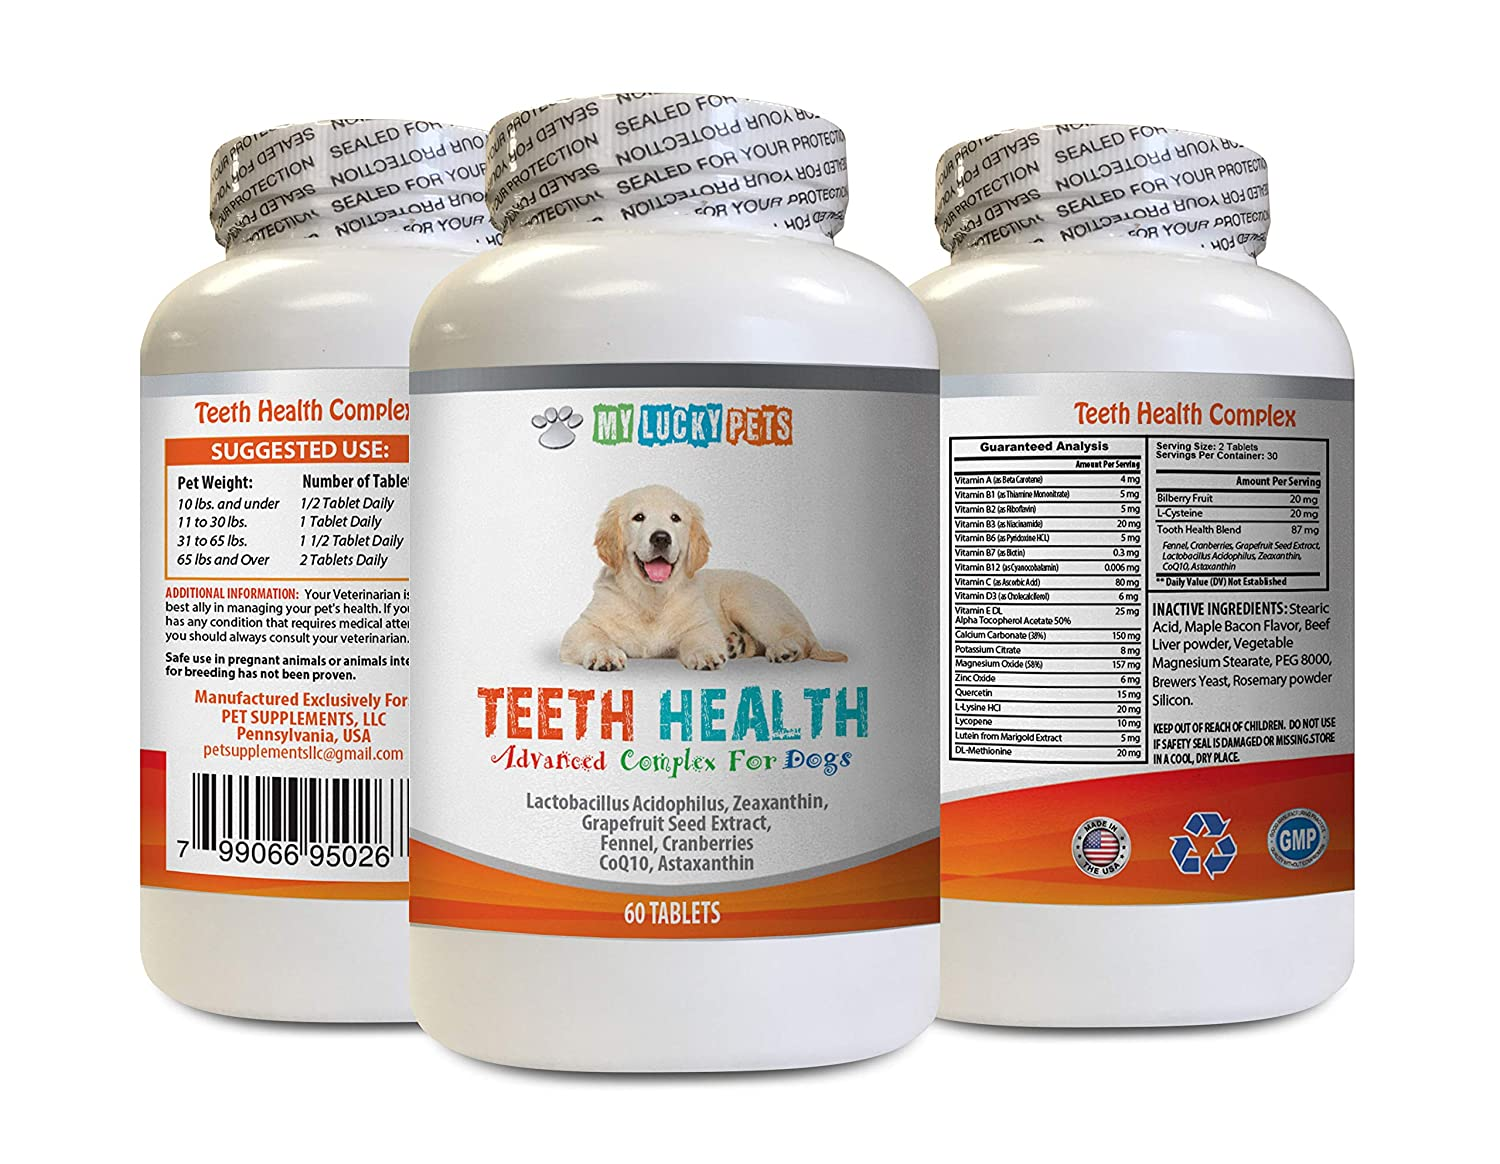 MY LUCKY PETS LLC Oral Care for Dogs Bad Breath - Advanced Teeth Health for Dogs - Fights Bad Breath - Best Looking Gums and Teeth - Dog Vitamin e - 60 Tablets (1 Bottle)